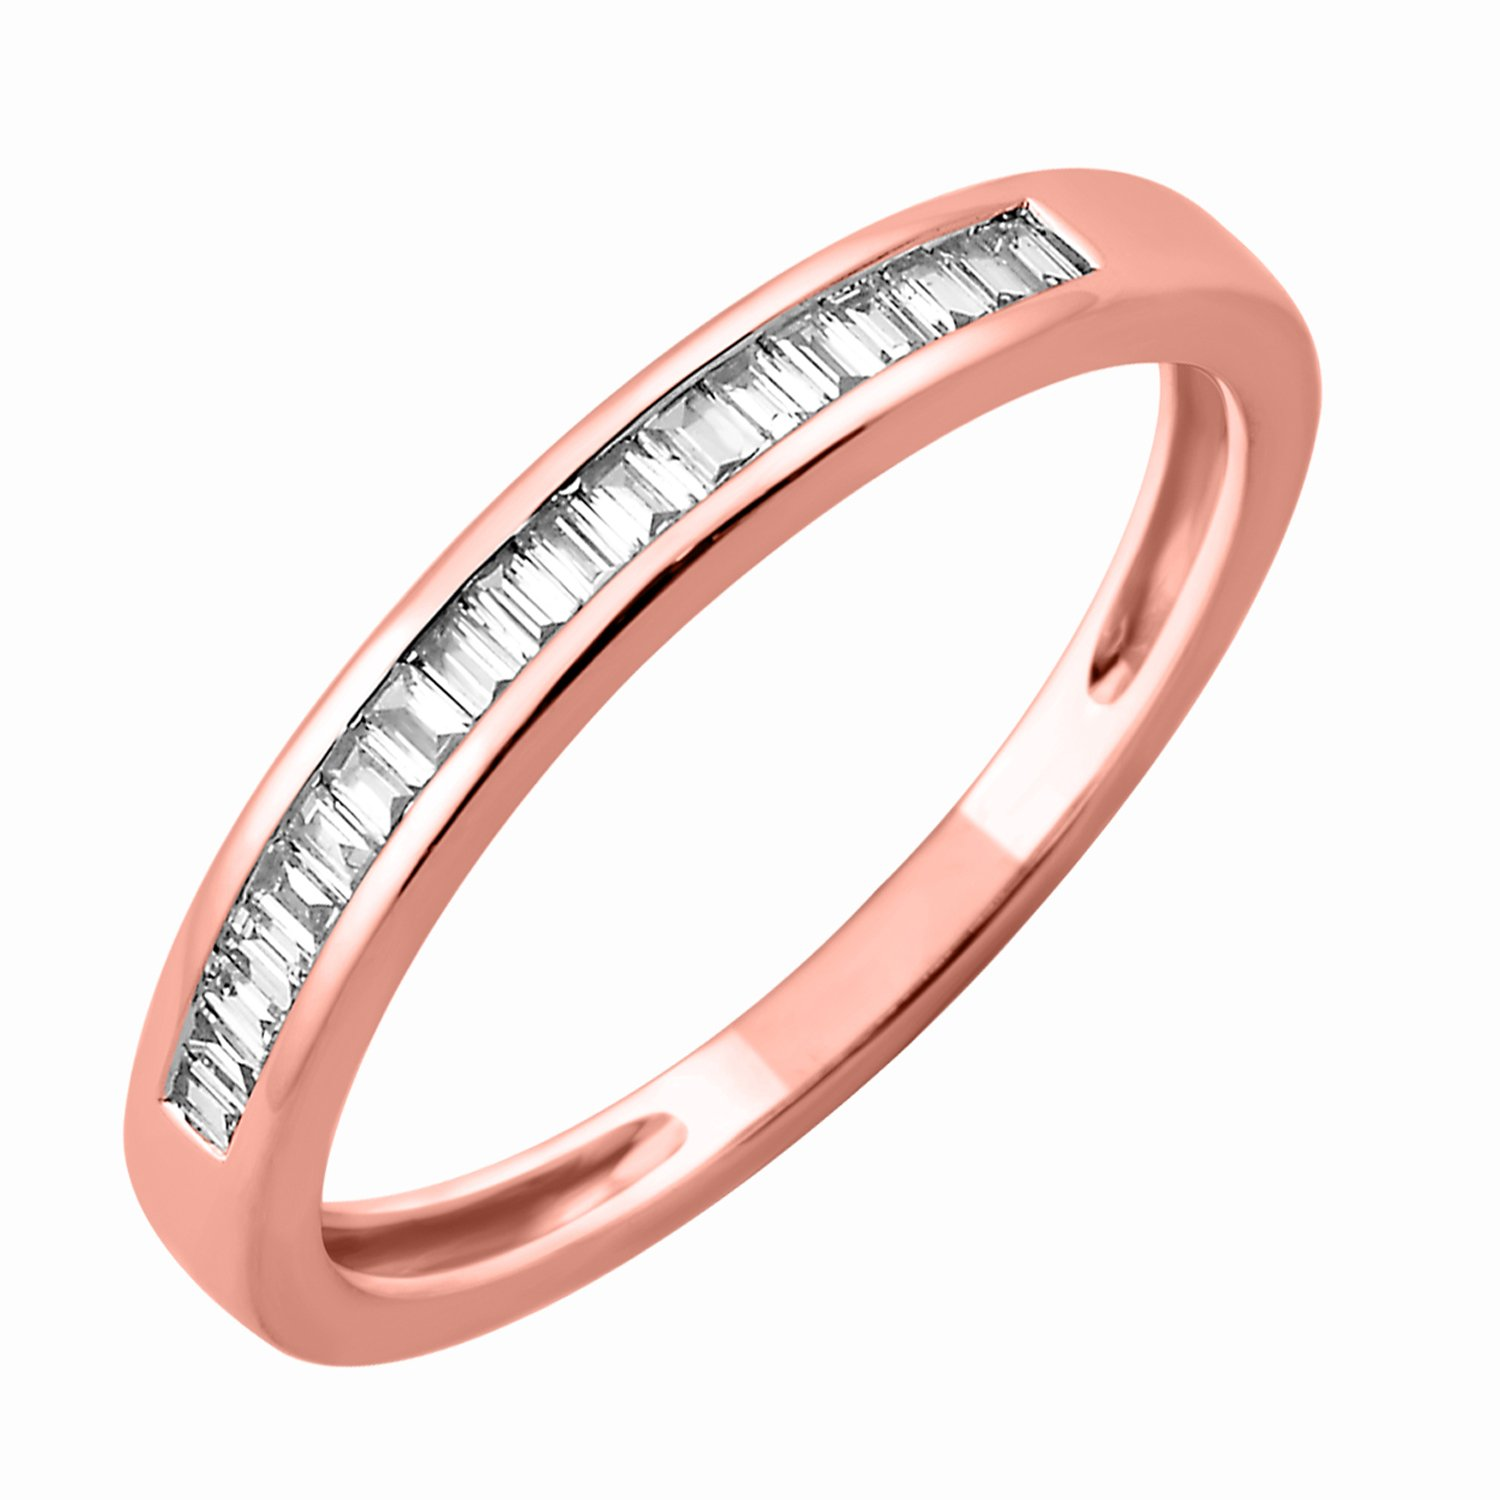 IGI Certified 10k Rose Gold Baguette-cut Diamond Wedding Ring Band (0.15 Carat)